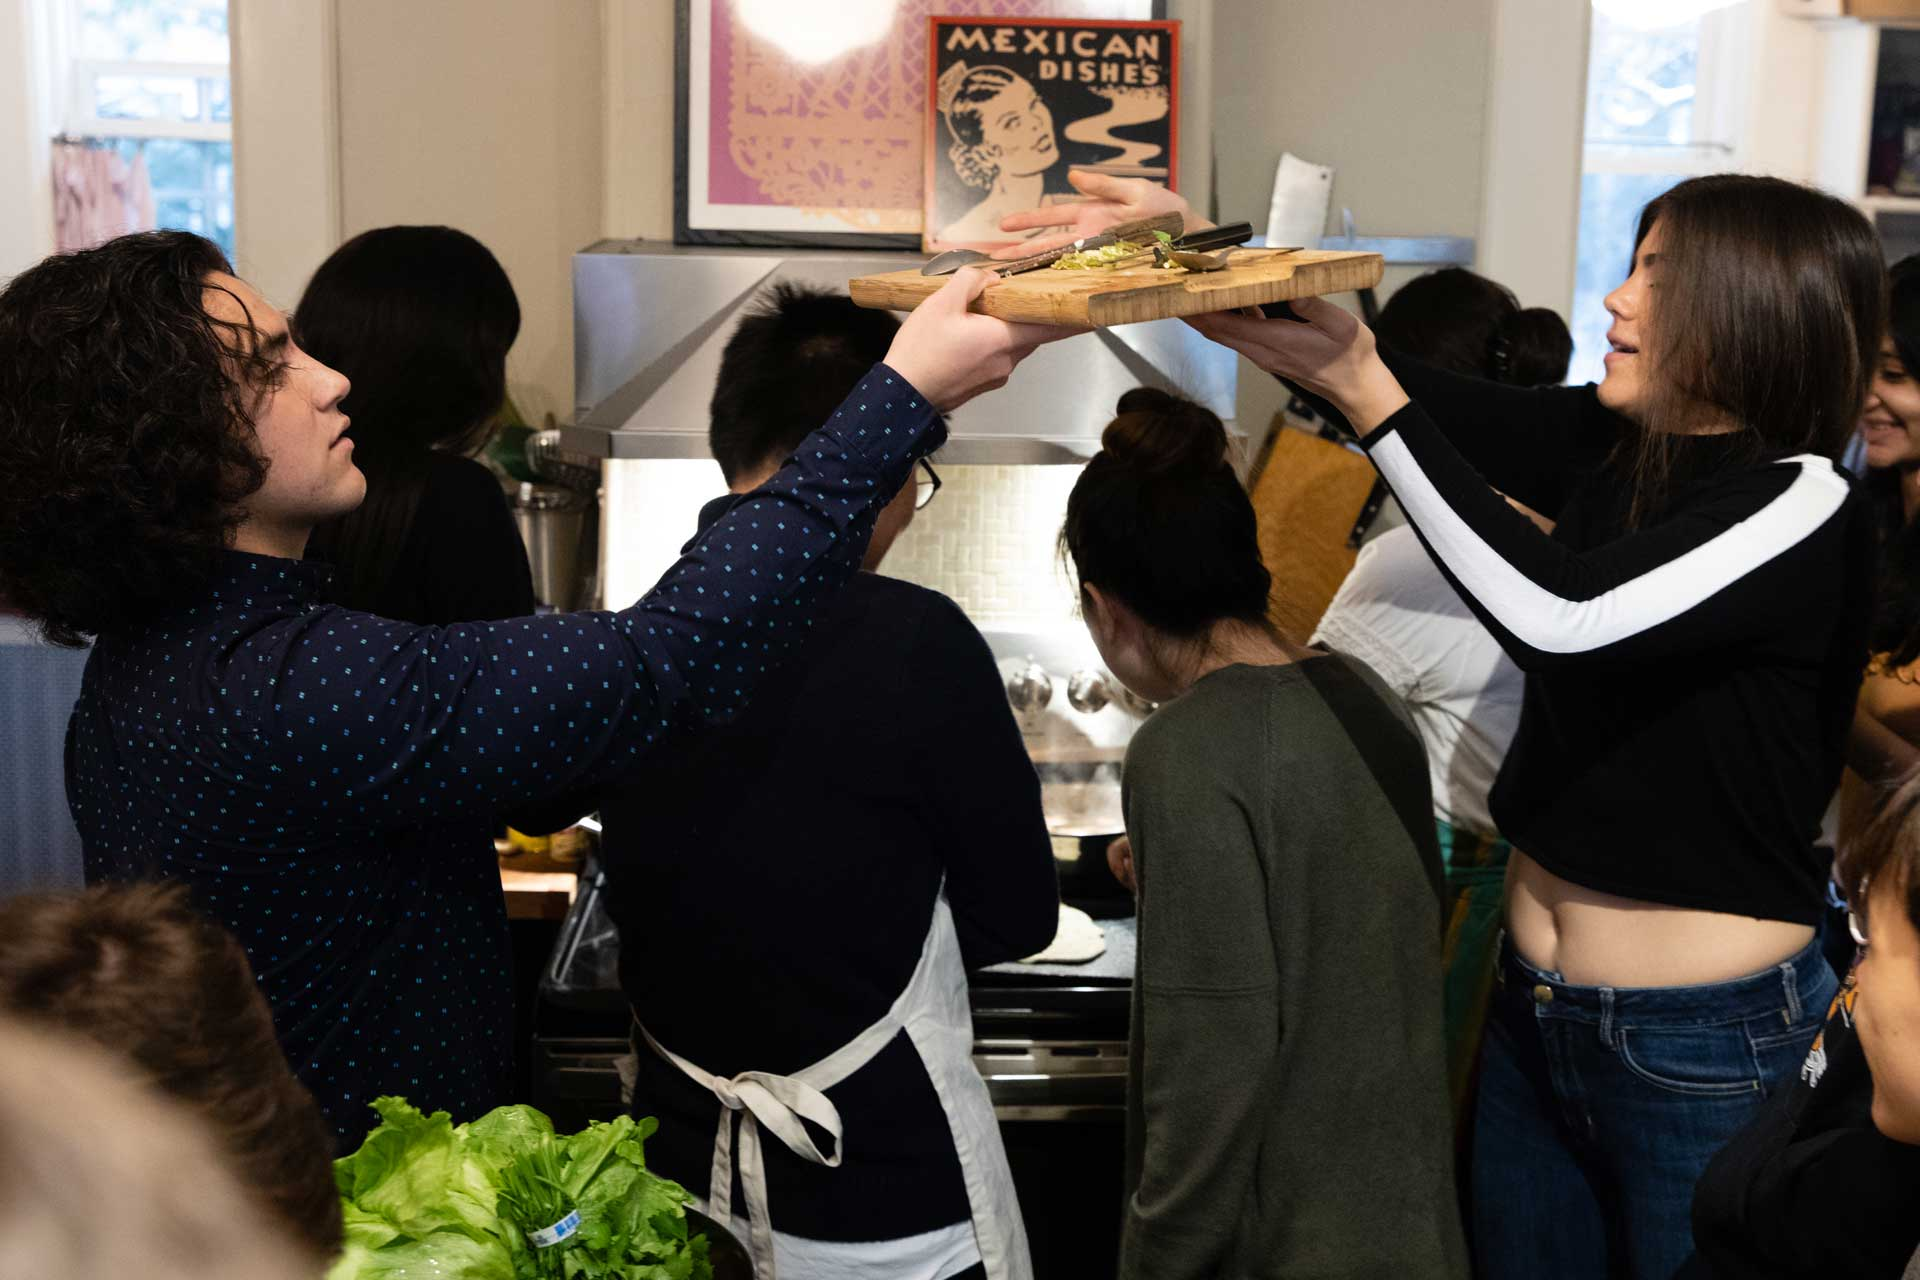 A group of student preparing food together in a kitchen